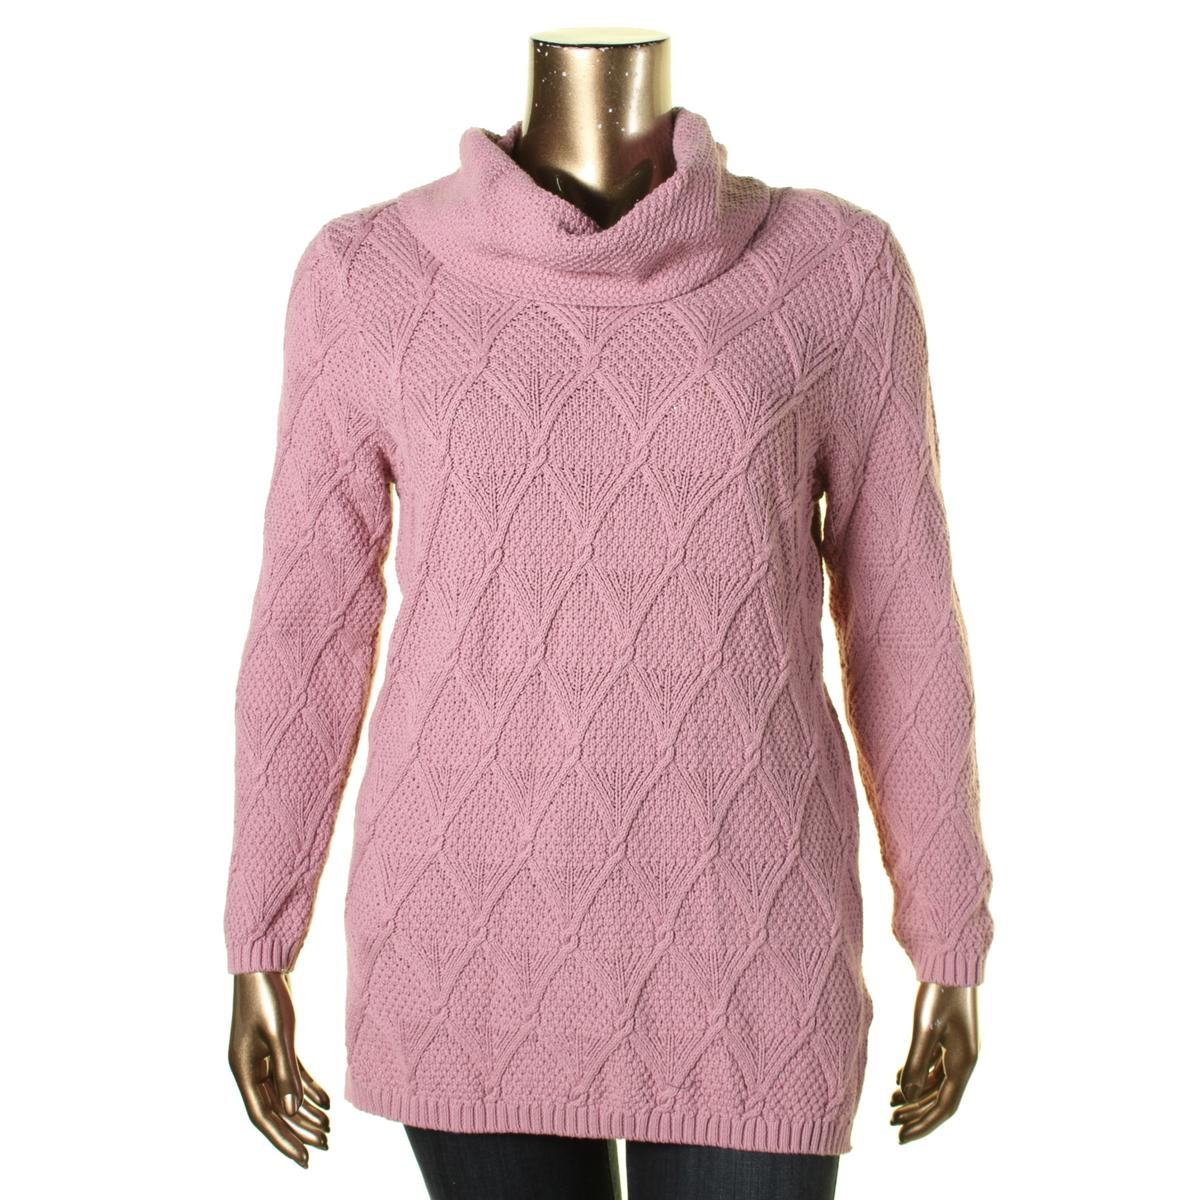 Jeanne Pierre 0391 Womens Cowl Neck Cable Knit Long